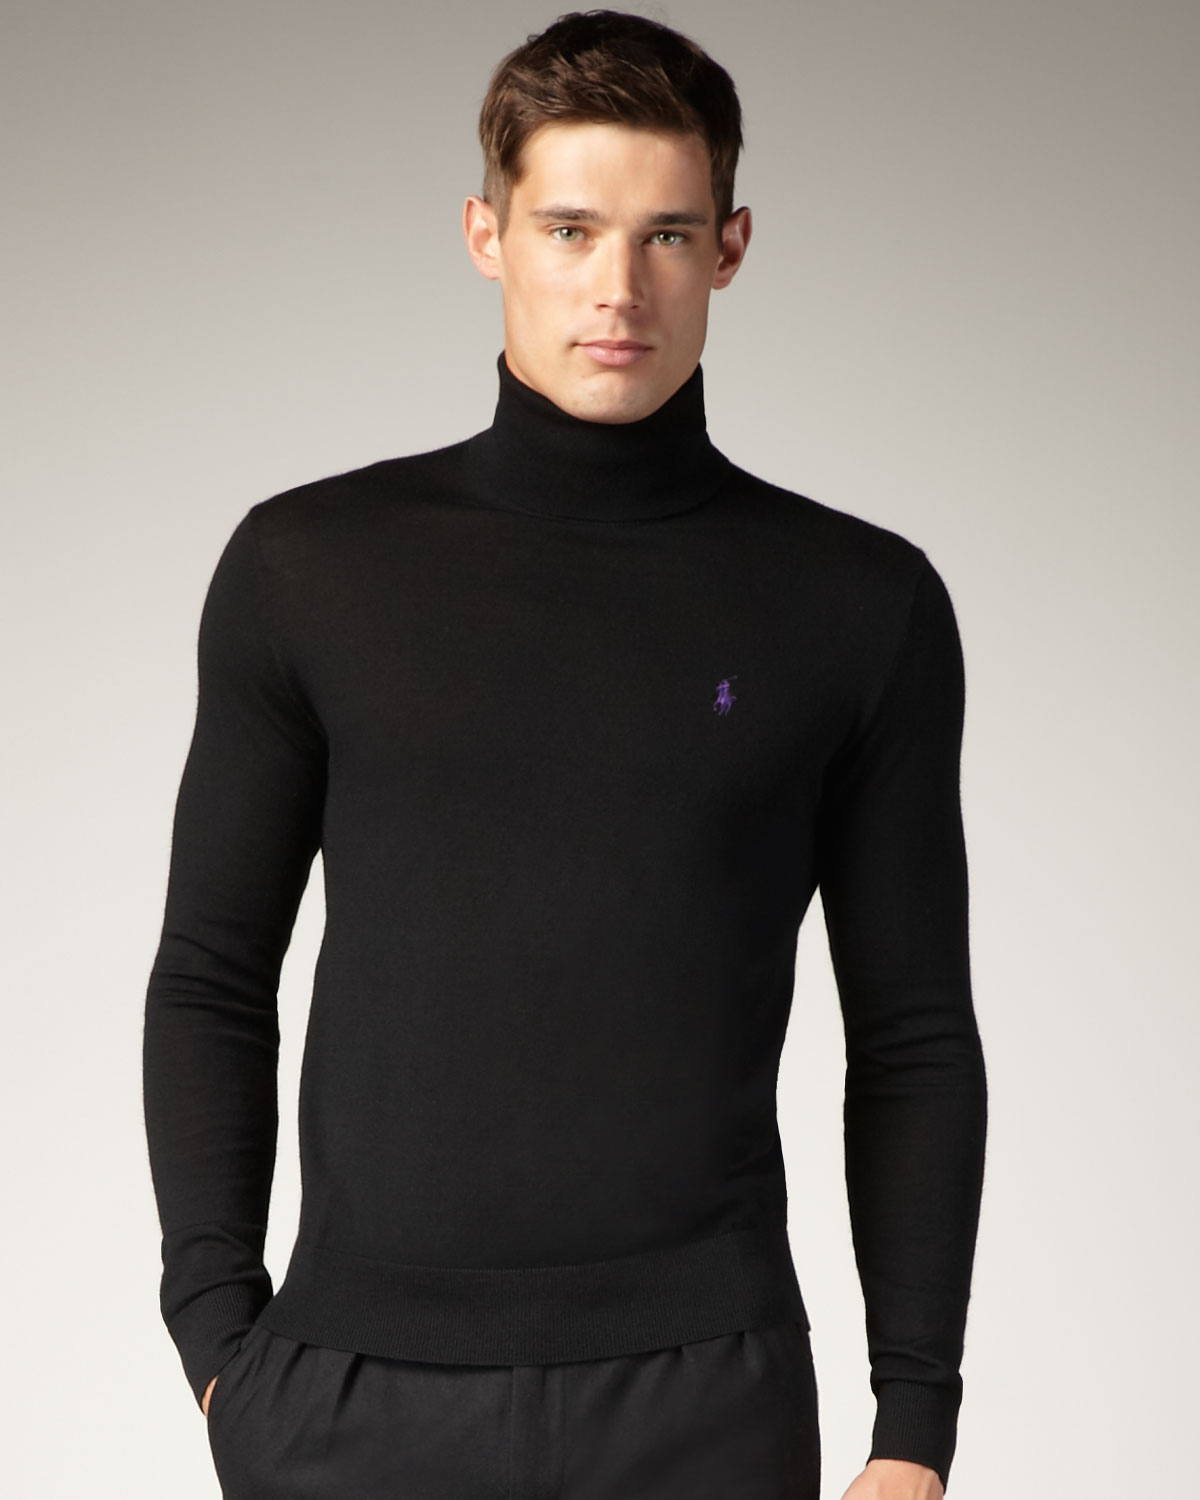 Men's Turtlenecks & Men's Mock-Turtlenecks at ganjamoney.tk Customers and testers alike rave about the softness, comfort and durability of ganjamoney.tk's Men's Turtlenecks. Our Men's turtlenecks and Men's mock-turtlenecks are made with premium wrinkle-resistant cotton that keeps it shape, and they're stitched to hold fast, wash after wash.